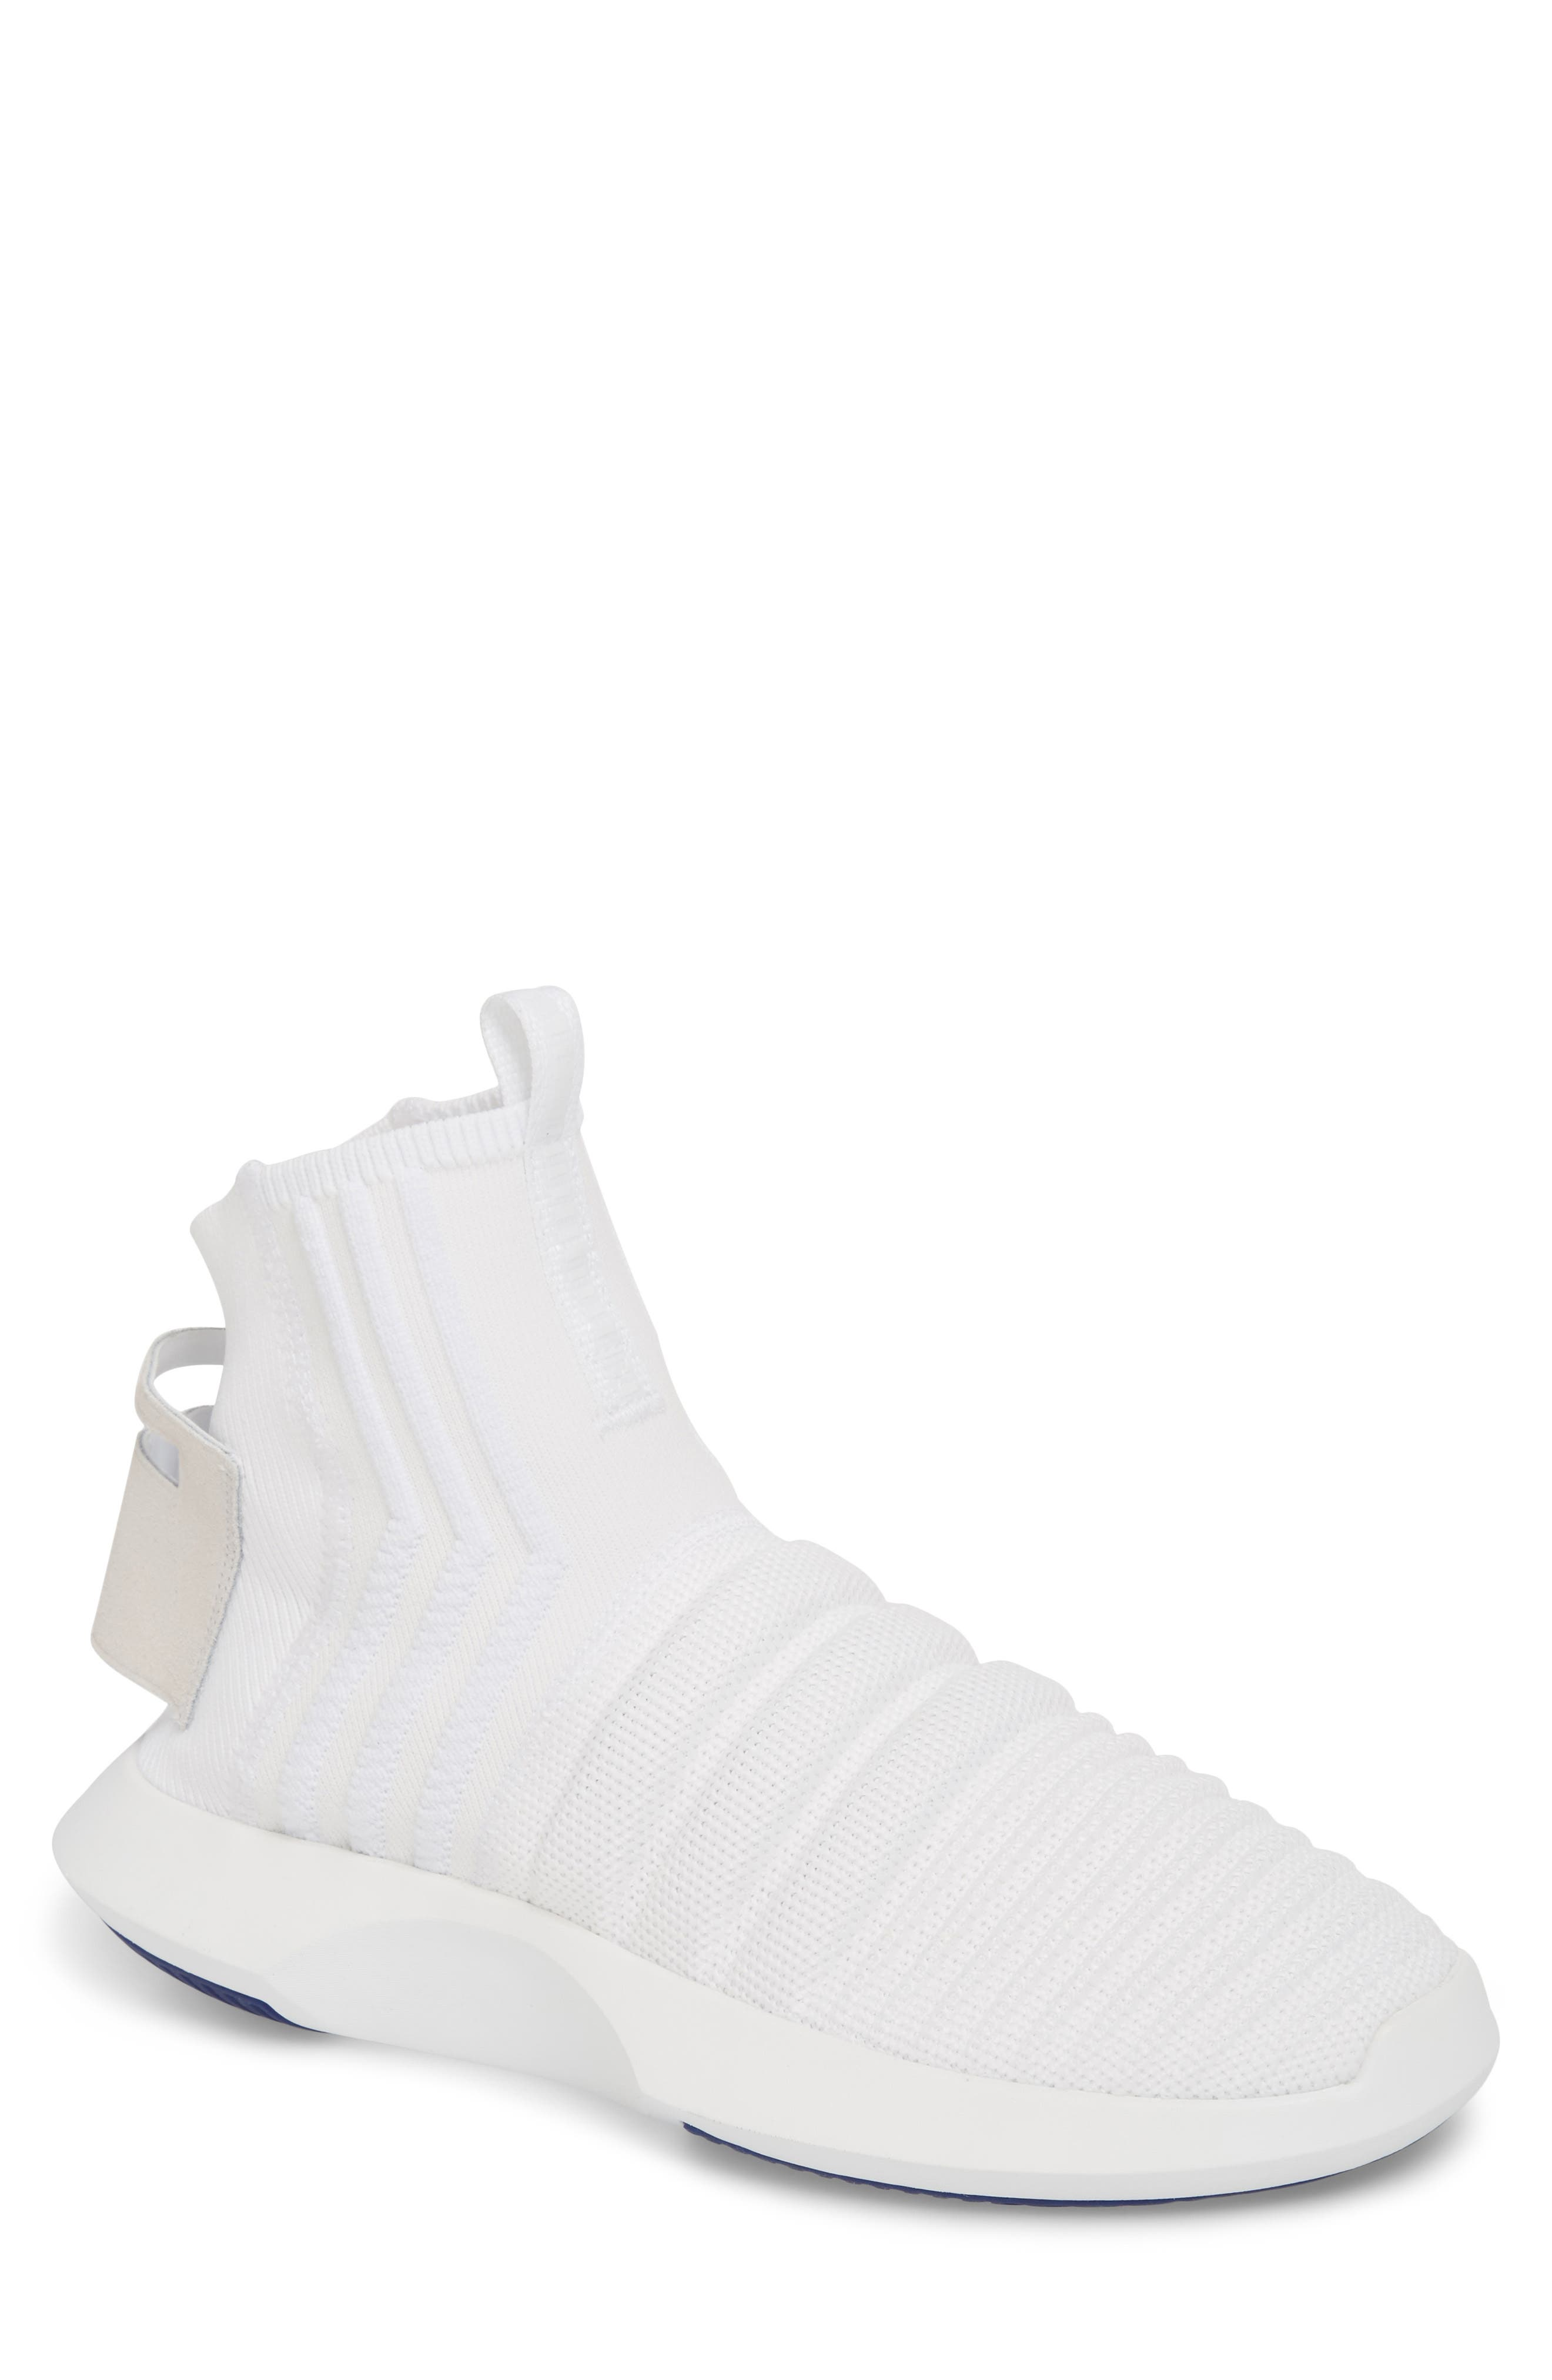 Crazy 1 ADV Sock Primeknit Sneaker,                             Main thumbnail 1, color,